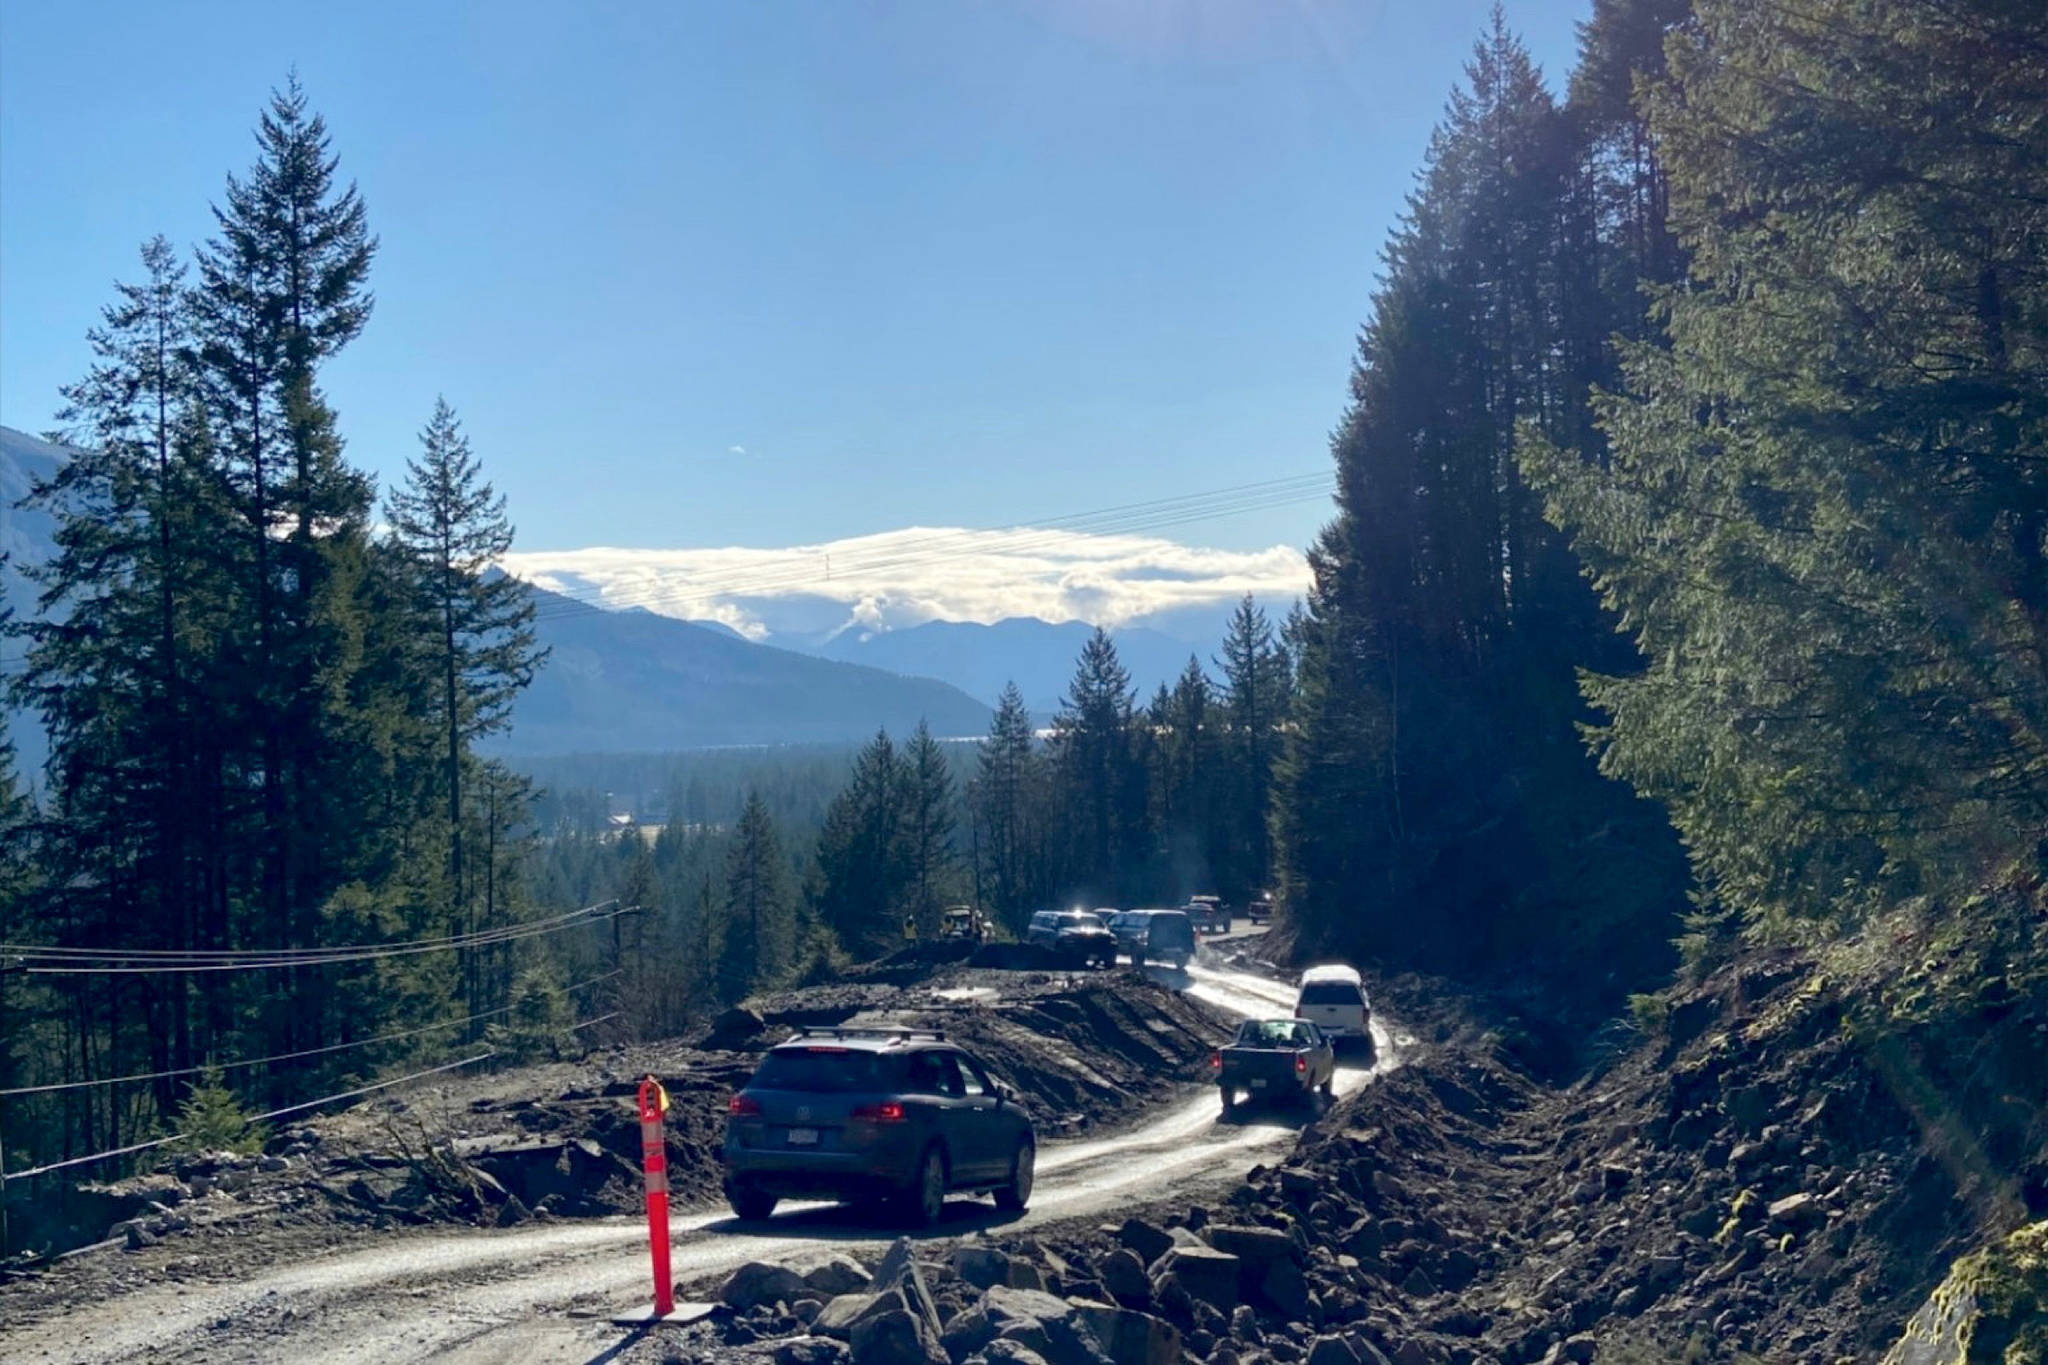 A convoy of vehicles leaves Hemlock Valley Road on Monday, escorted by an Emil Anderson Maintenance vehicle. Those staying at the resort have been stranded because of a landslide barring access to the road early this past weekend. (Emil Anderson Maintenance/Contributed)